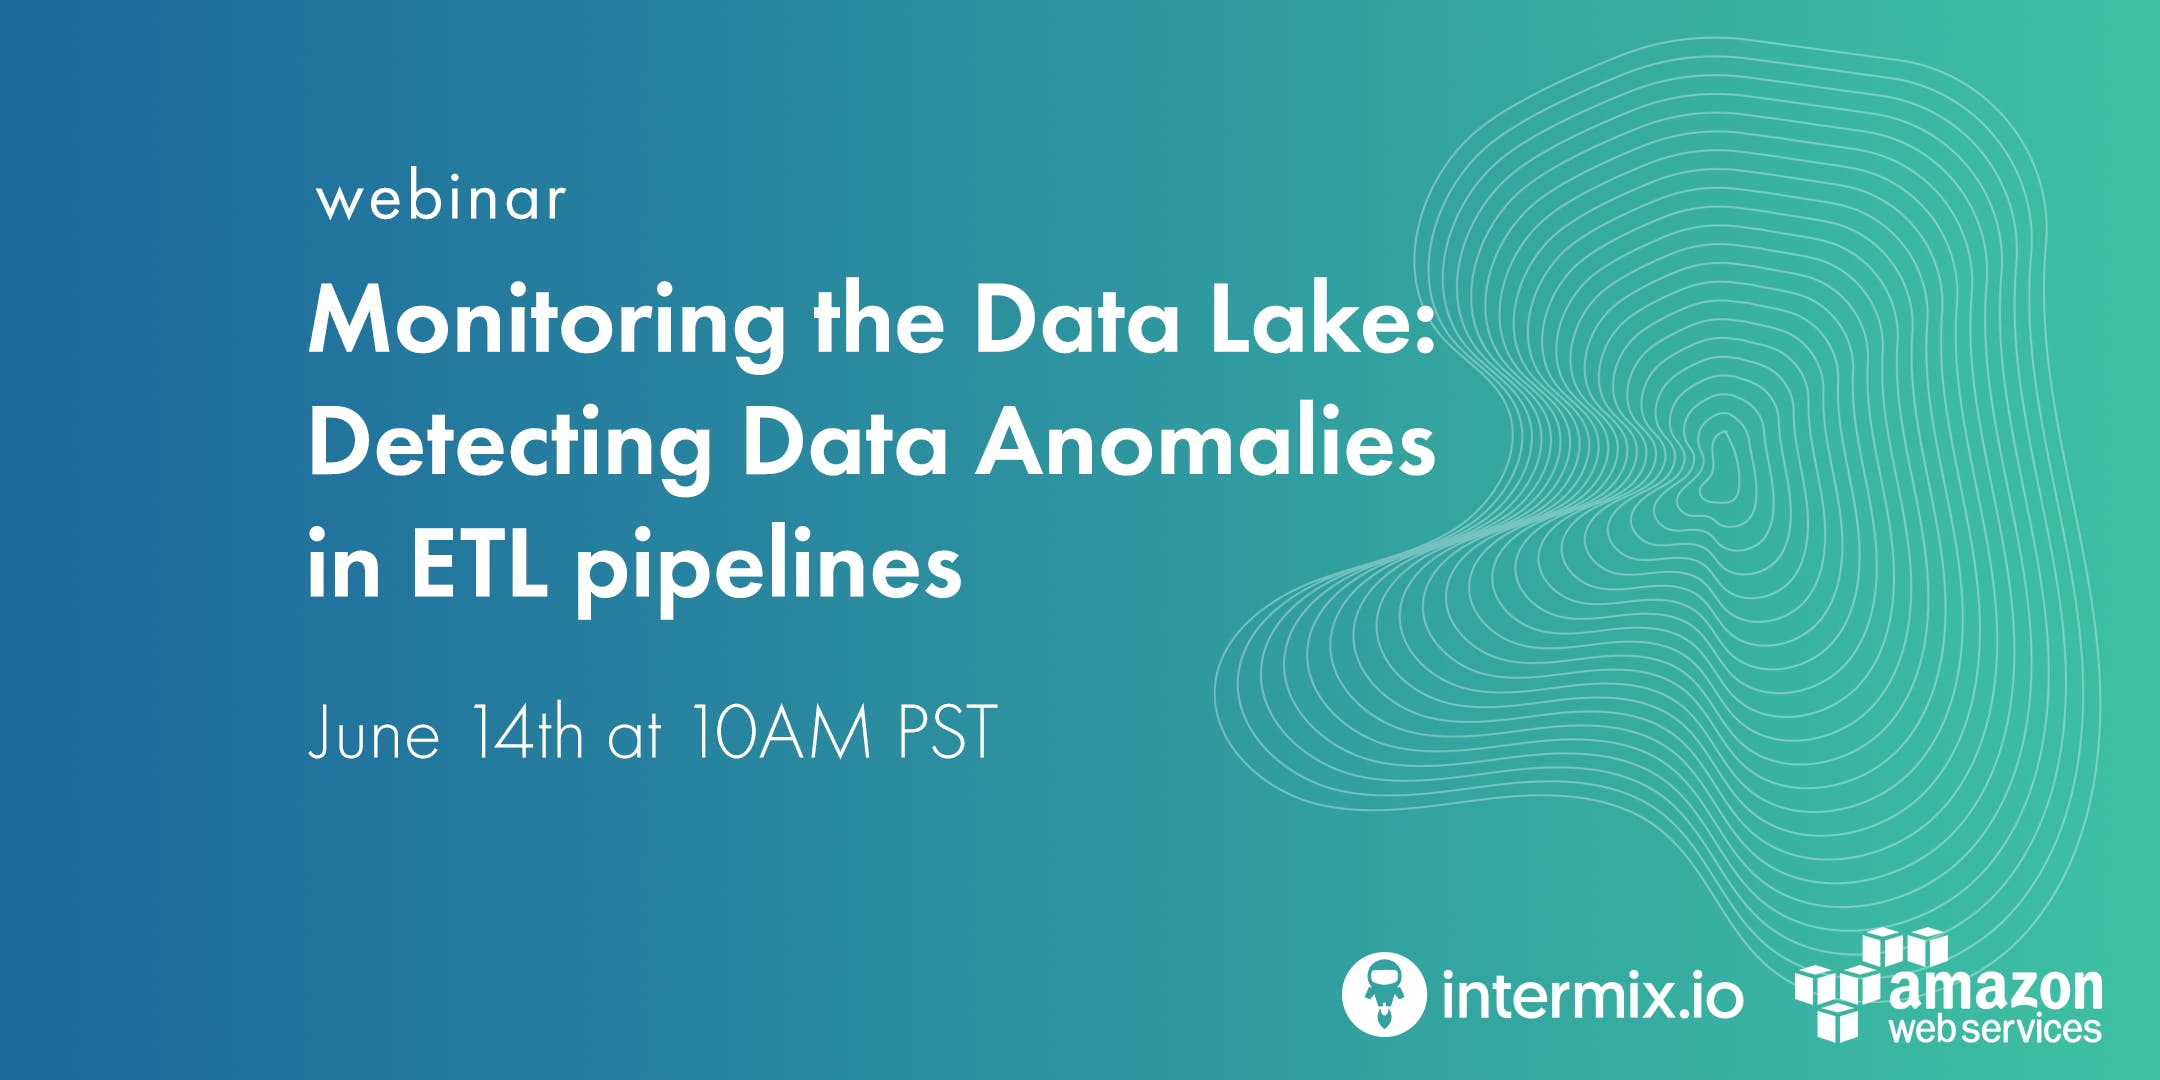 Monitoring the Data Lake: Detecting Data Anomalies in ETL pipelines